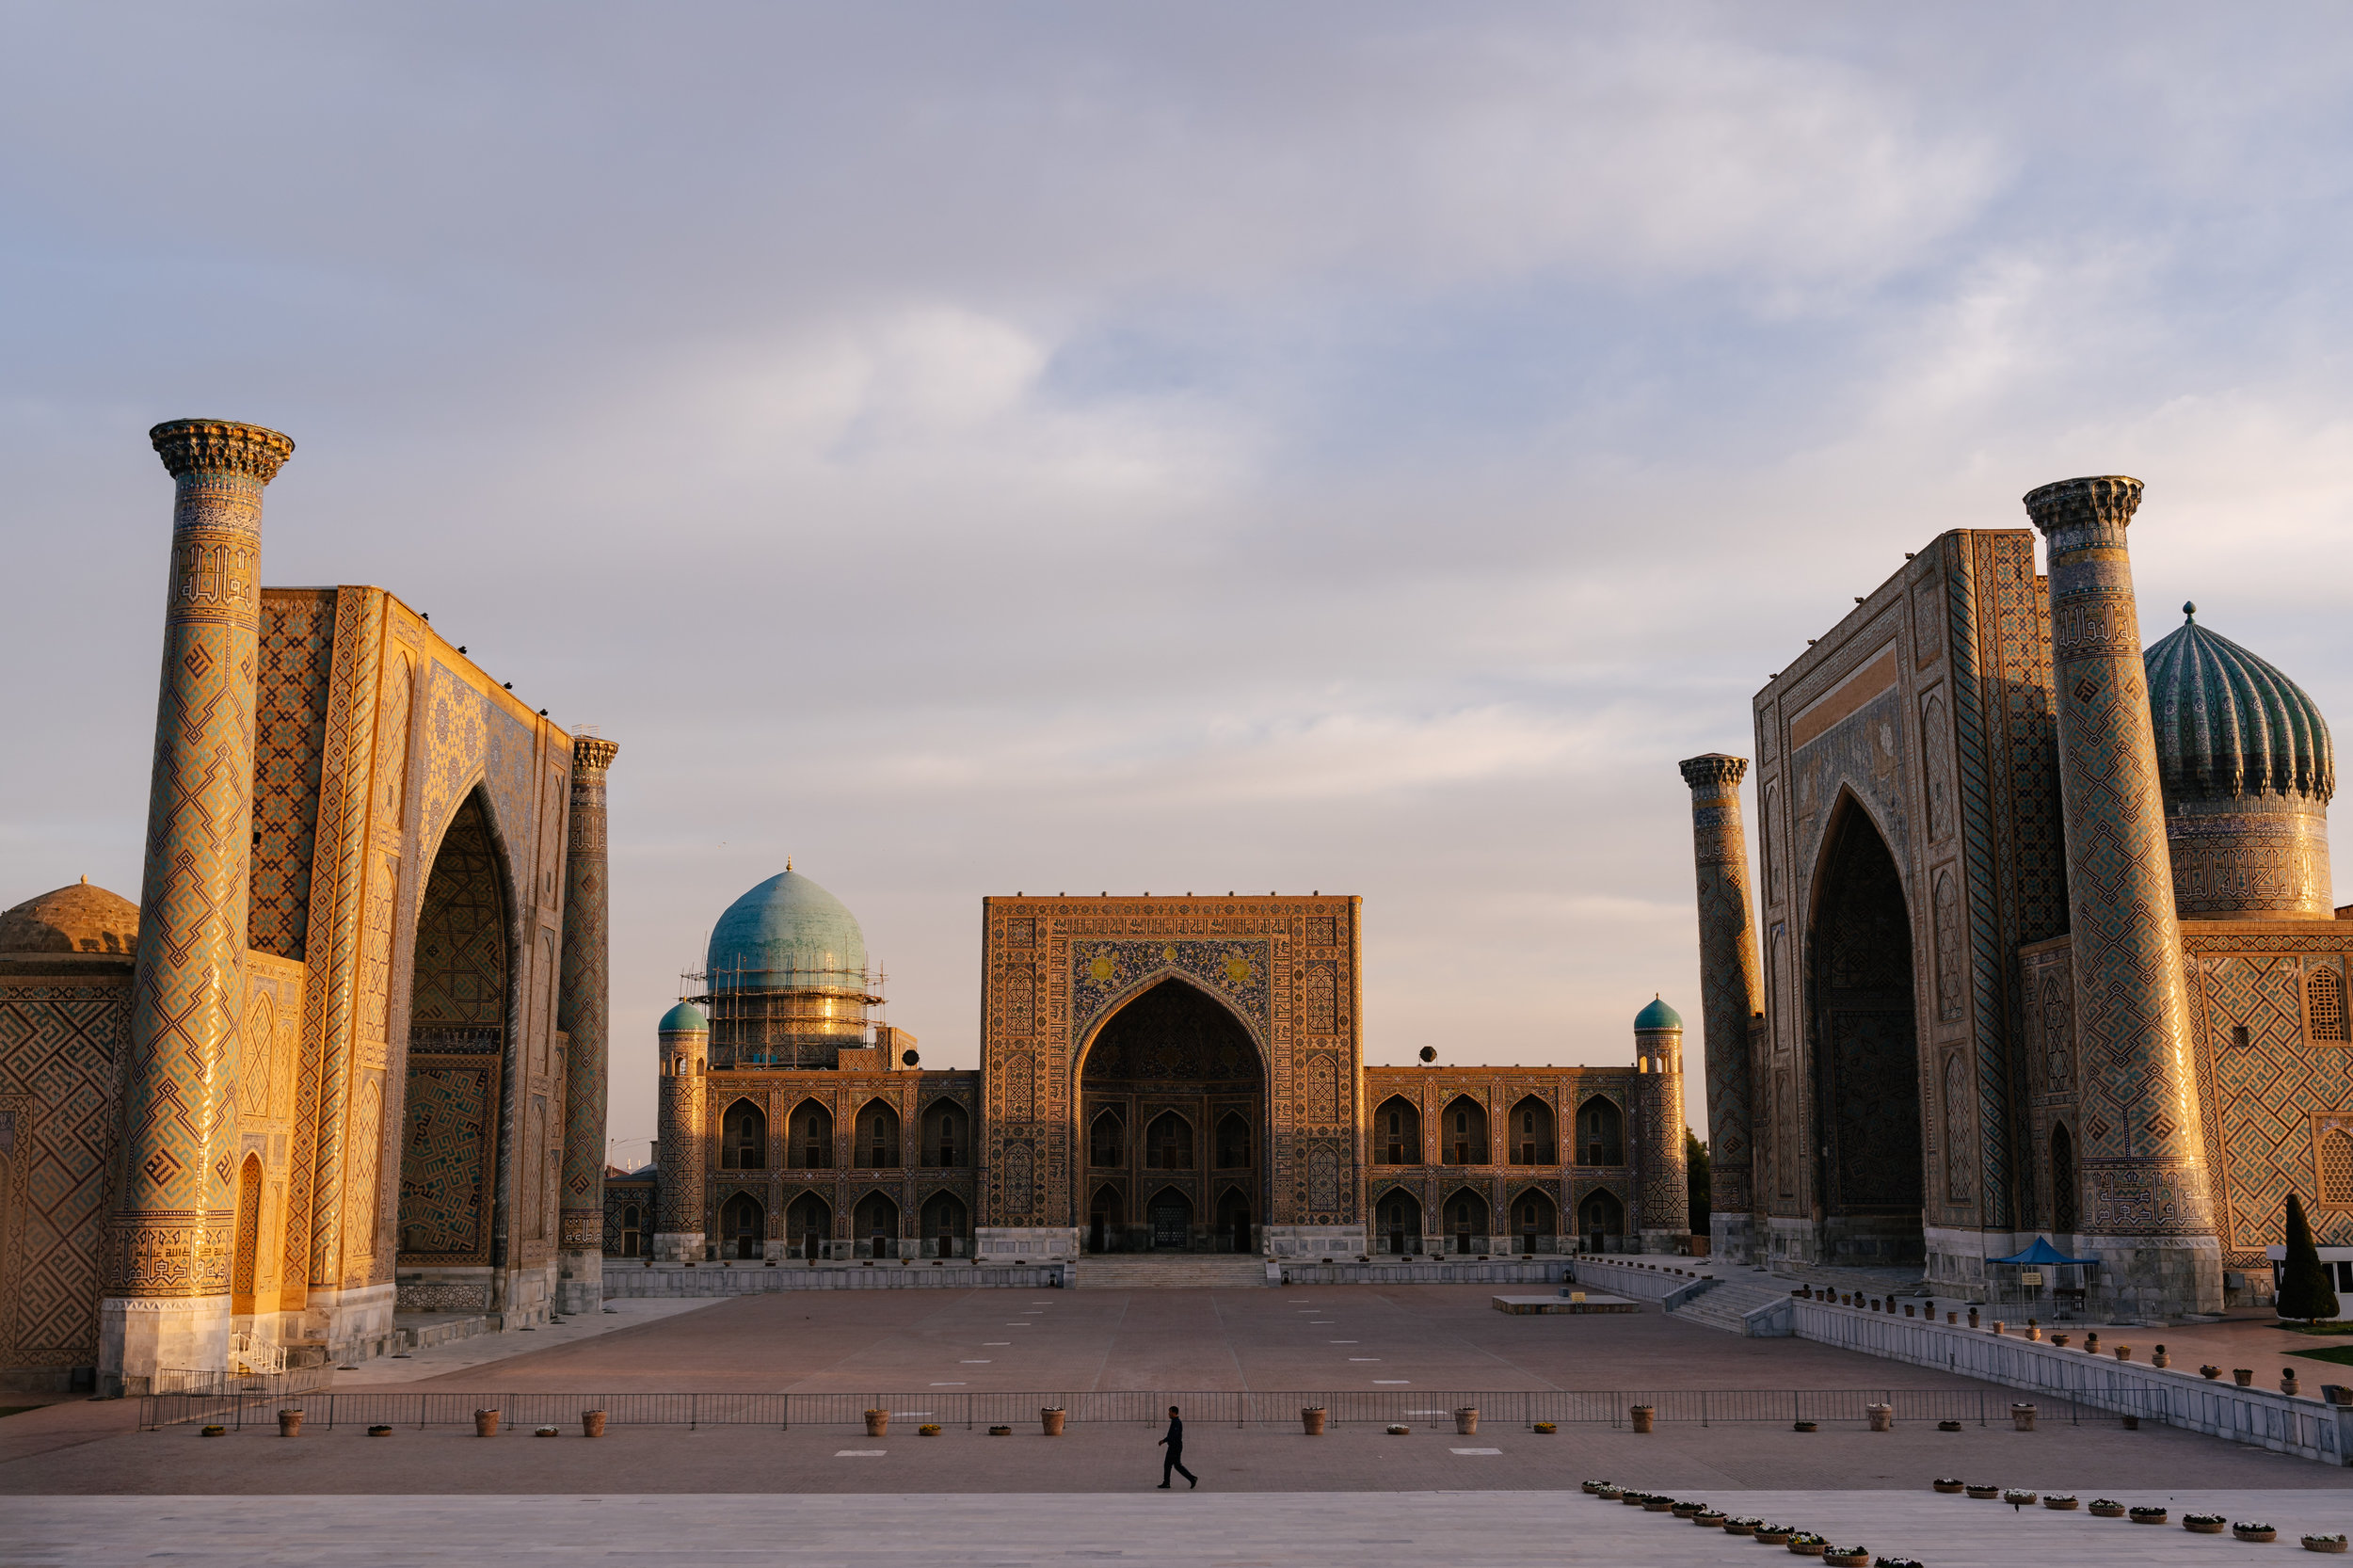 Registan at sunrise.